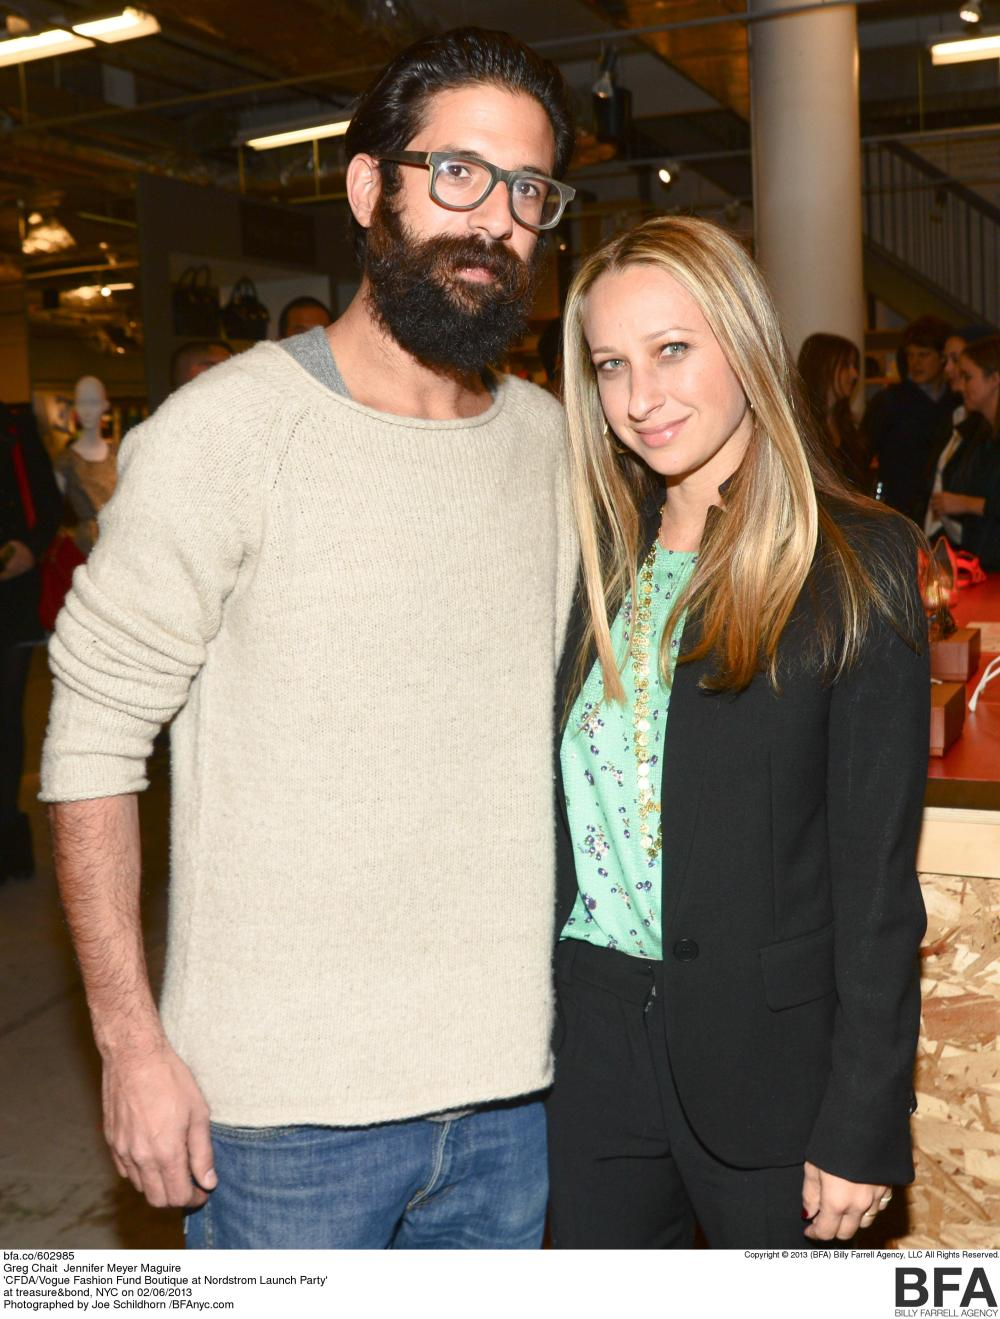 CFDA/Vogue Fashion Fund Winner Greg Chait and Jennifer Meyer Maguire Photo Credit Nordstrom